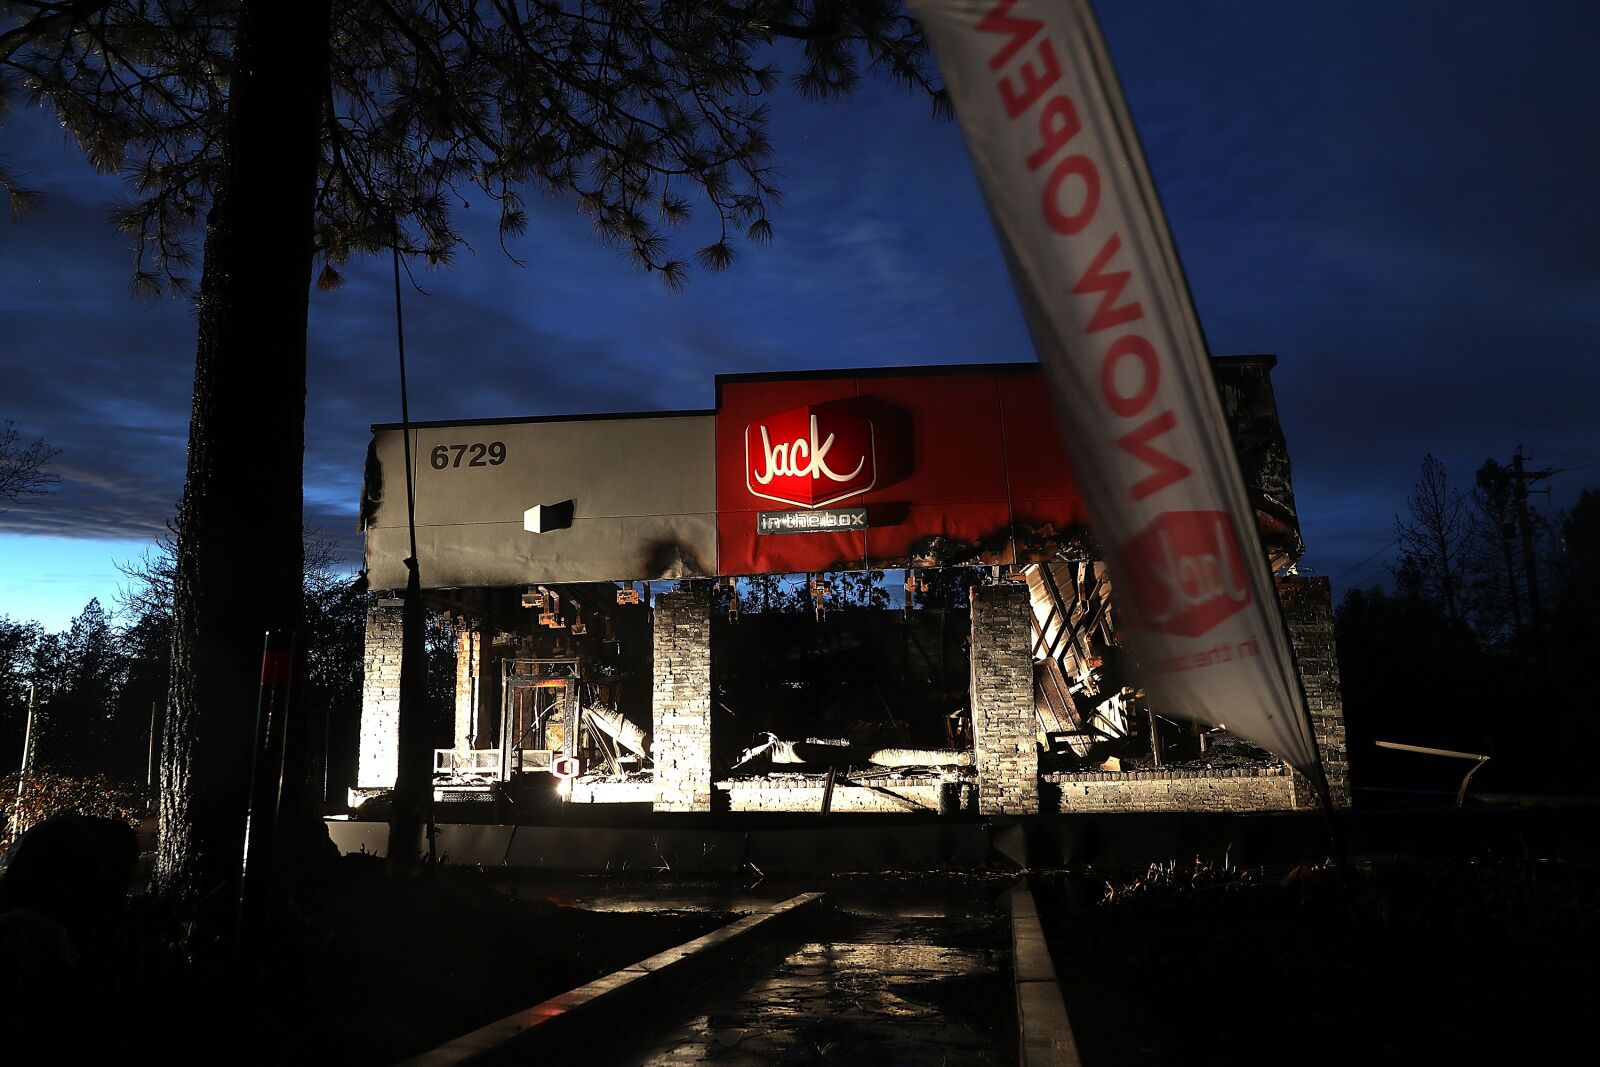 Best $1 fast food menu items: Jack in the Box, McDonald's, and more